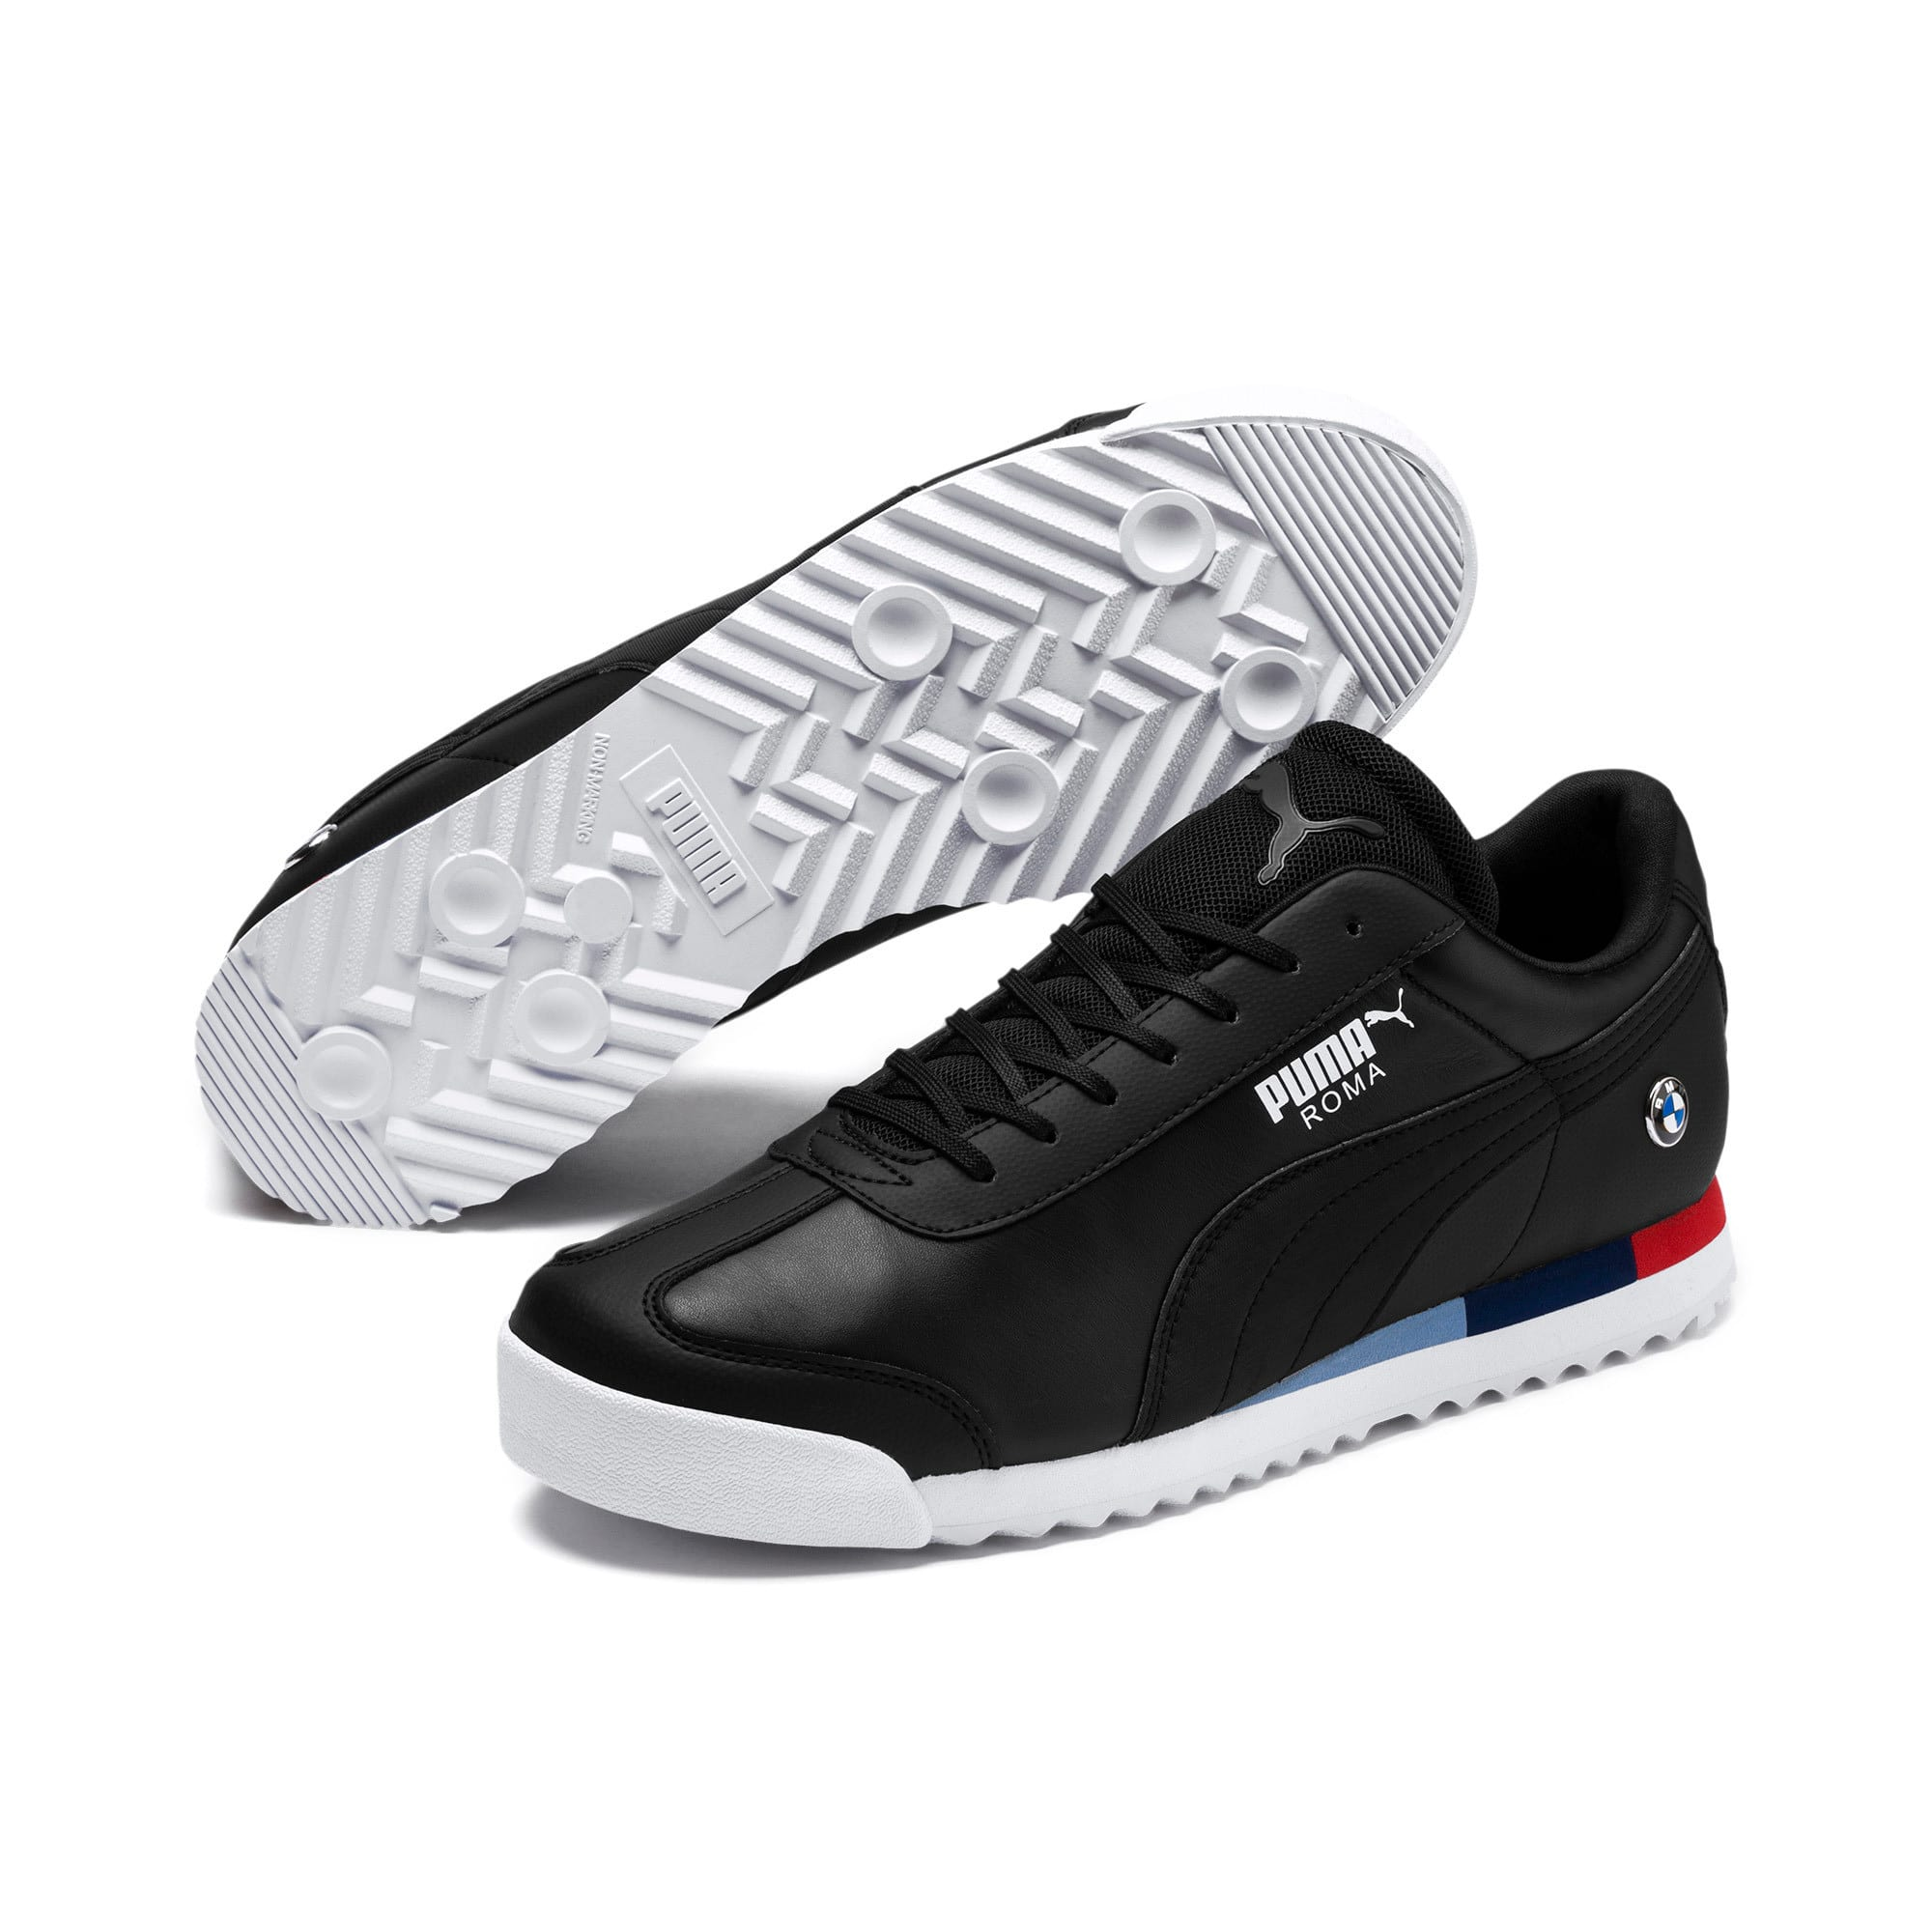 Thumbnail 2 of BMW MMS Roma Men's Trainers, Puma Black-Puma Black, medium